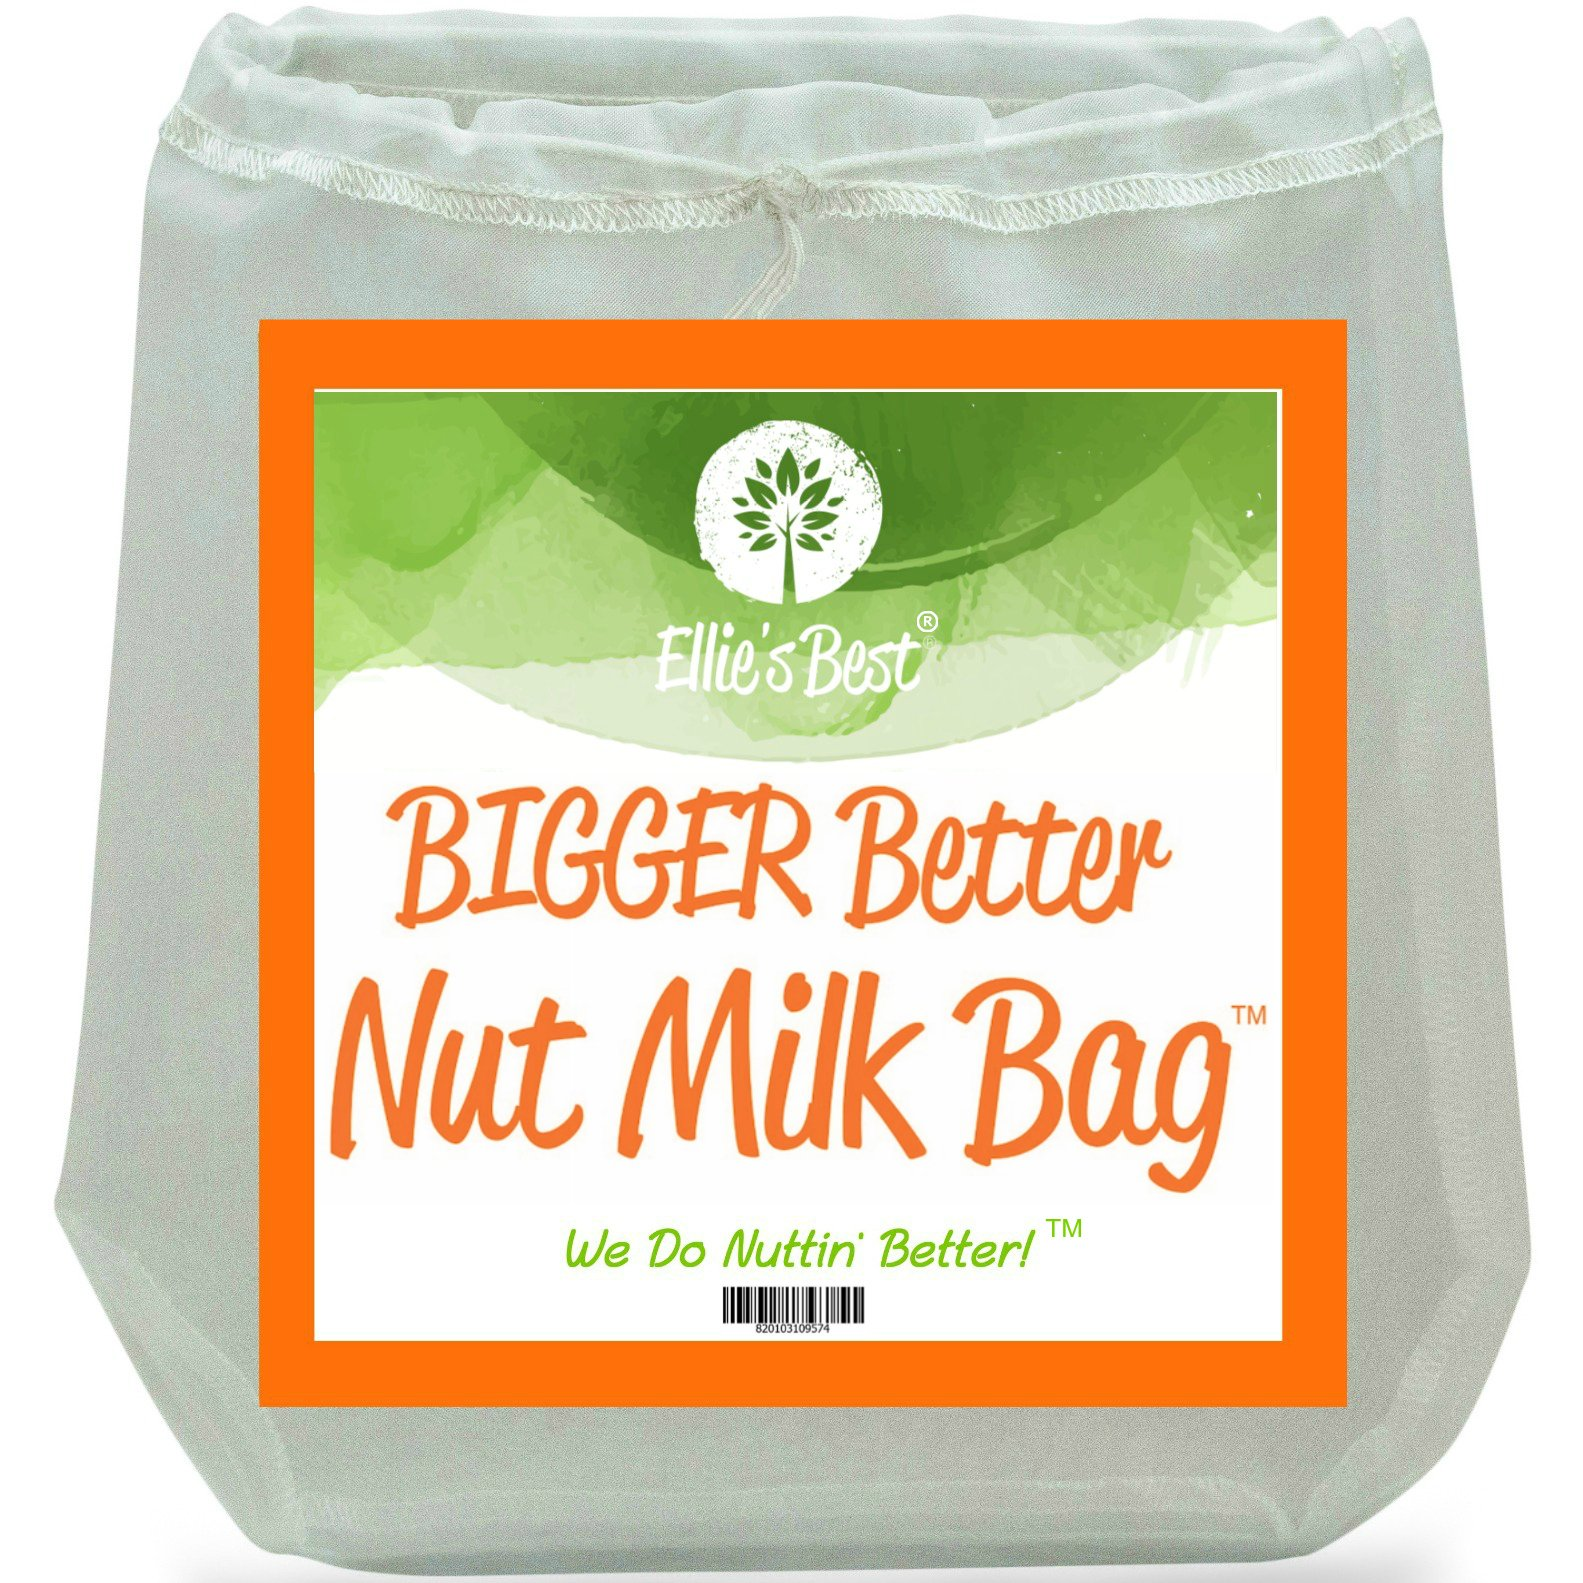 This Nut Milk Bag is life changing!  The quality is incredible. It's large enough to handle double jobs, to make cauliflower pizza, to make juice without a juicer, cold brew and more.  Use the code 'brighbeanhealth' for a 10% off savings . Share the magic you make with it with me on Instagram :)